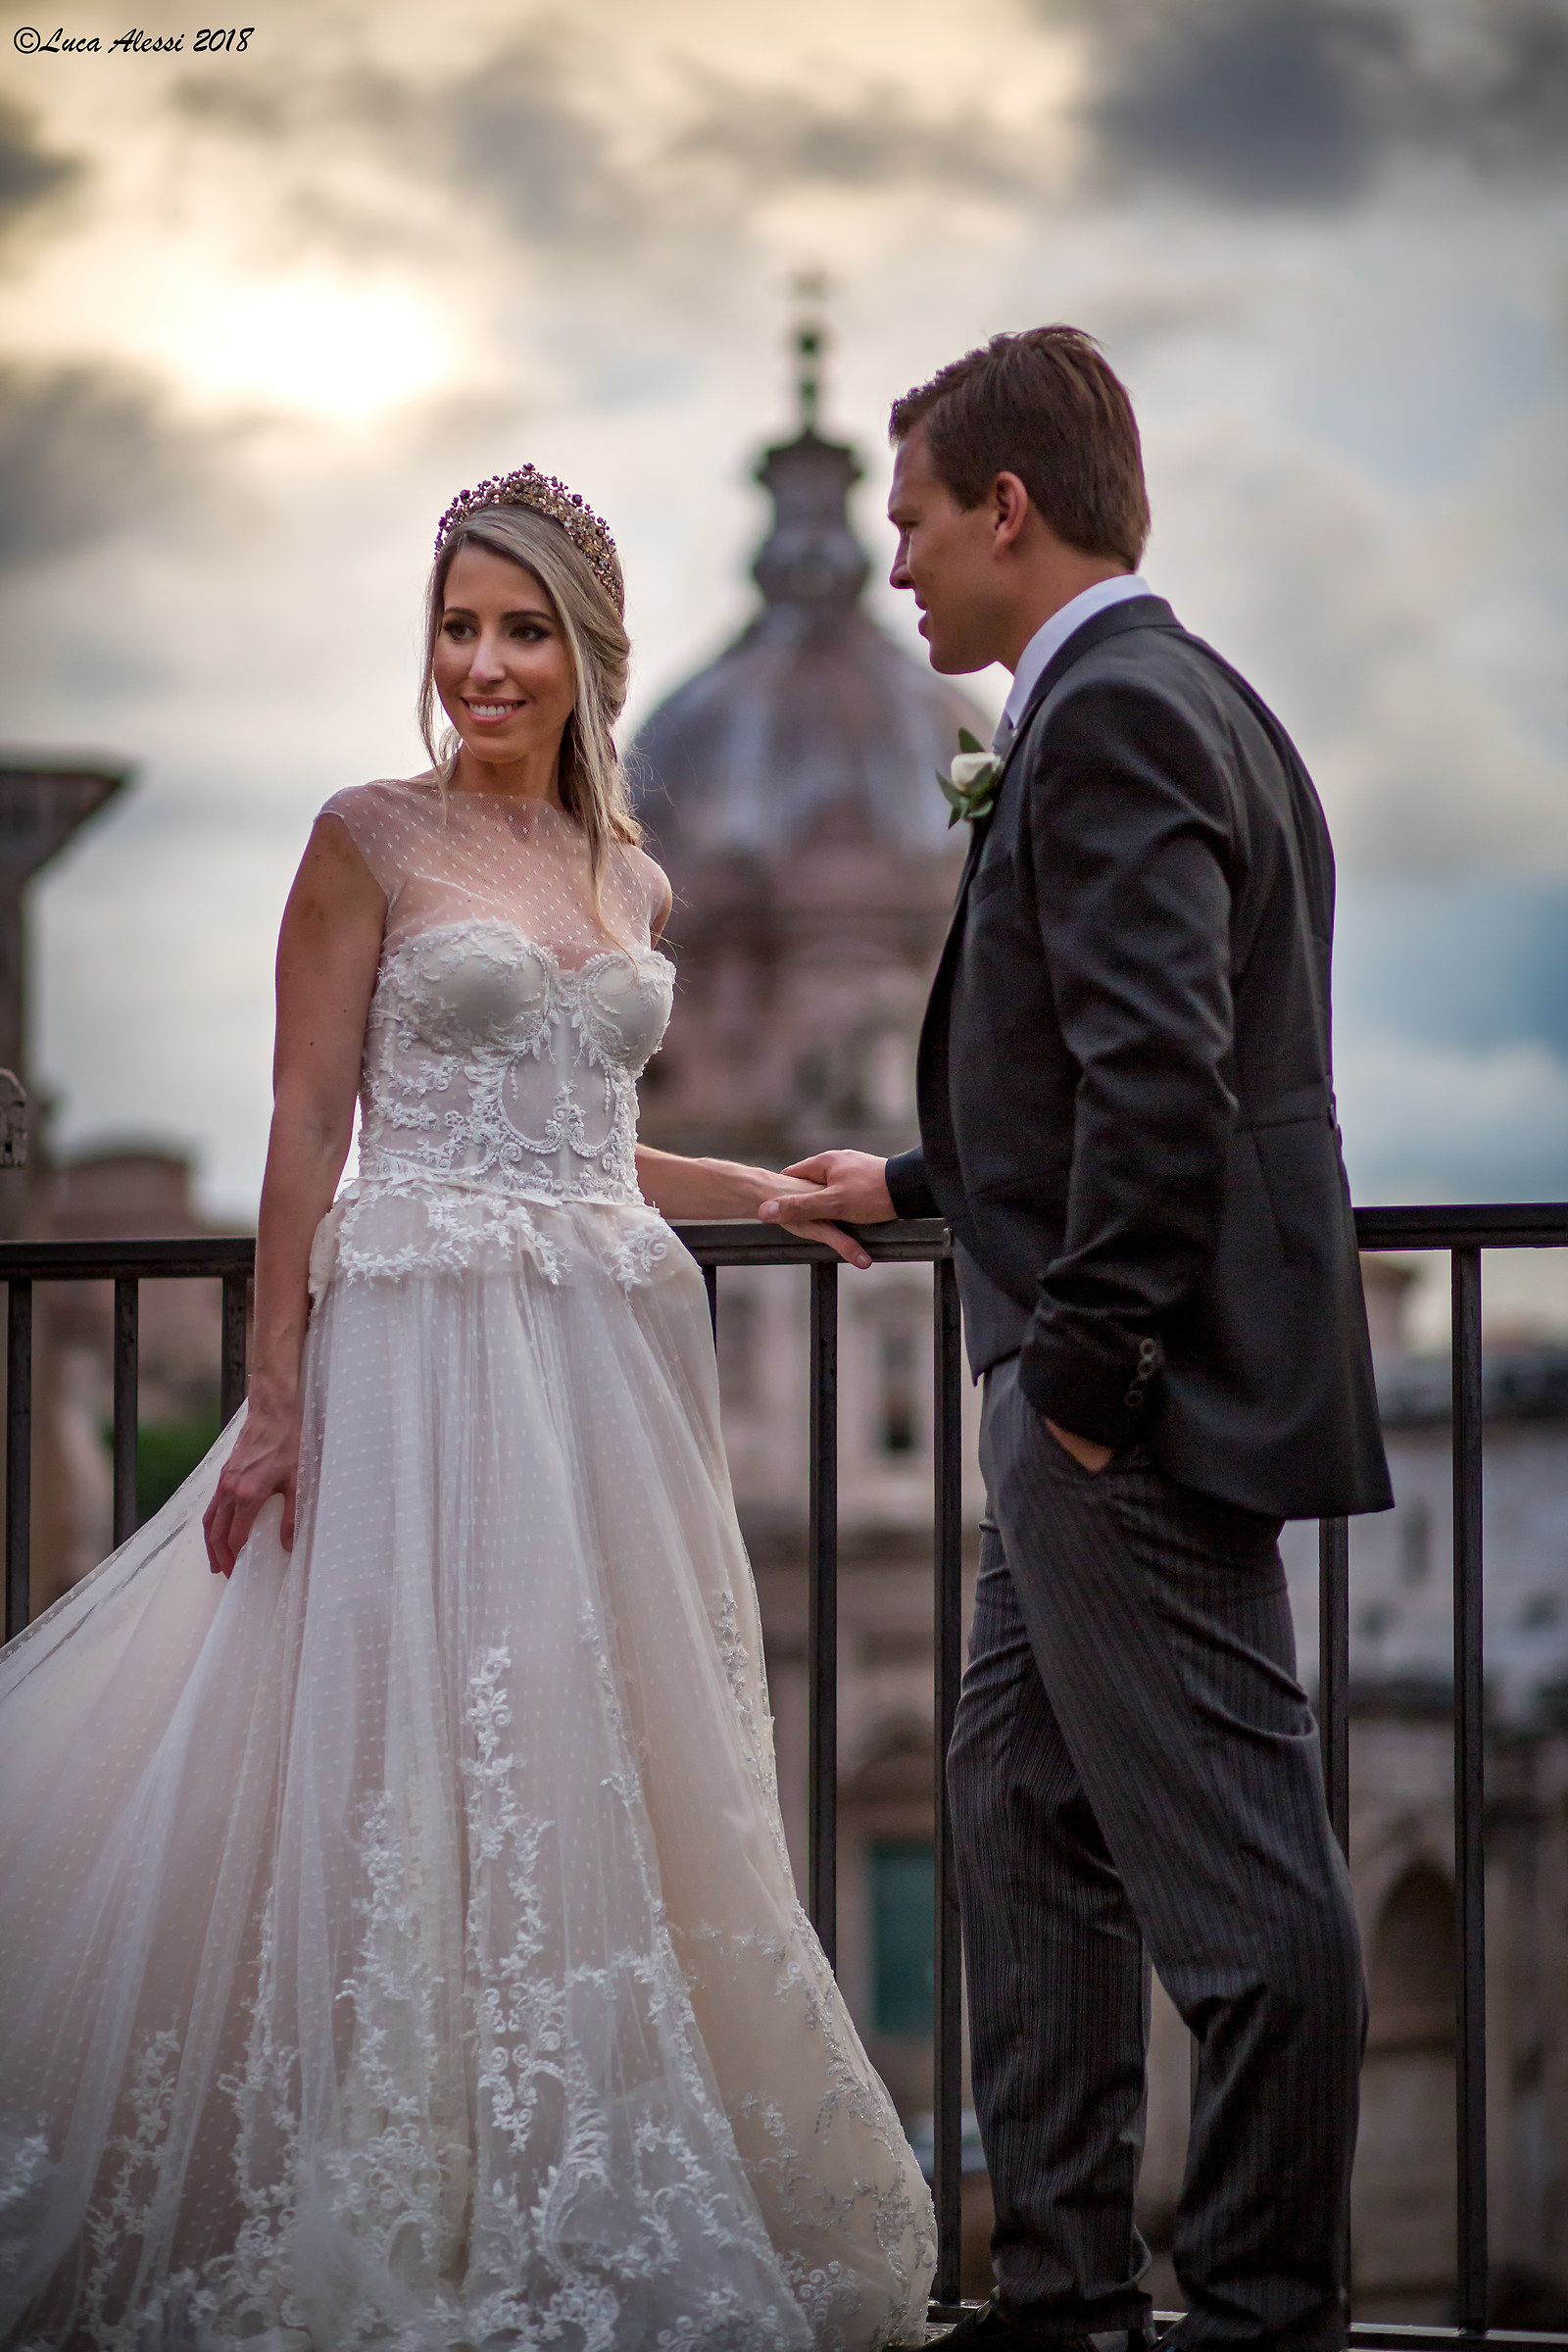 Married in Rome...